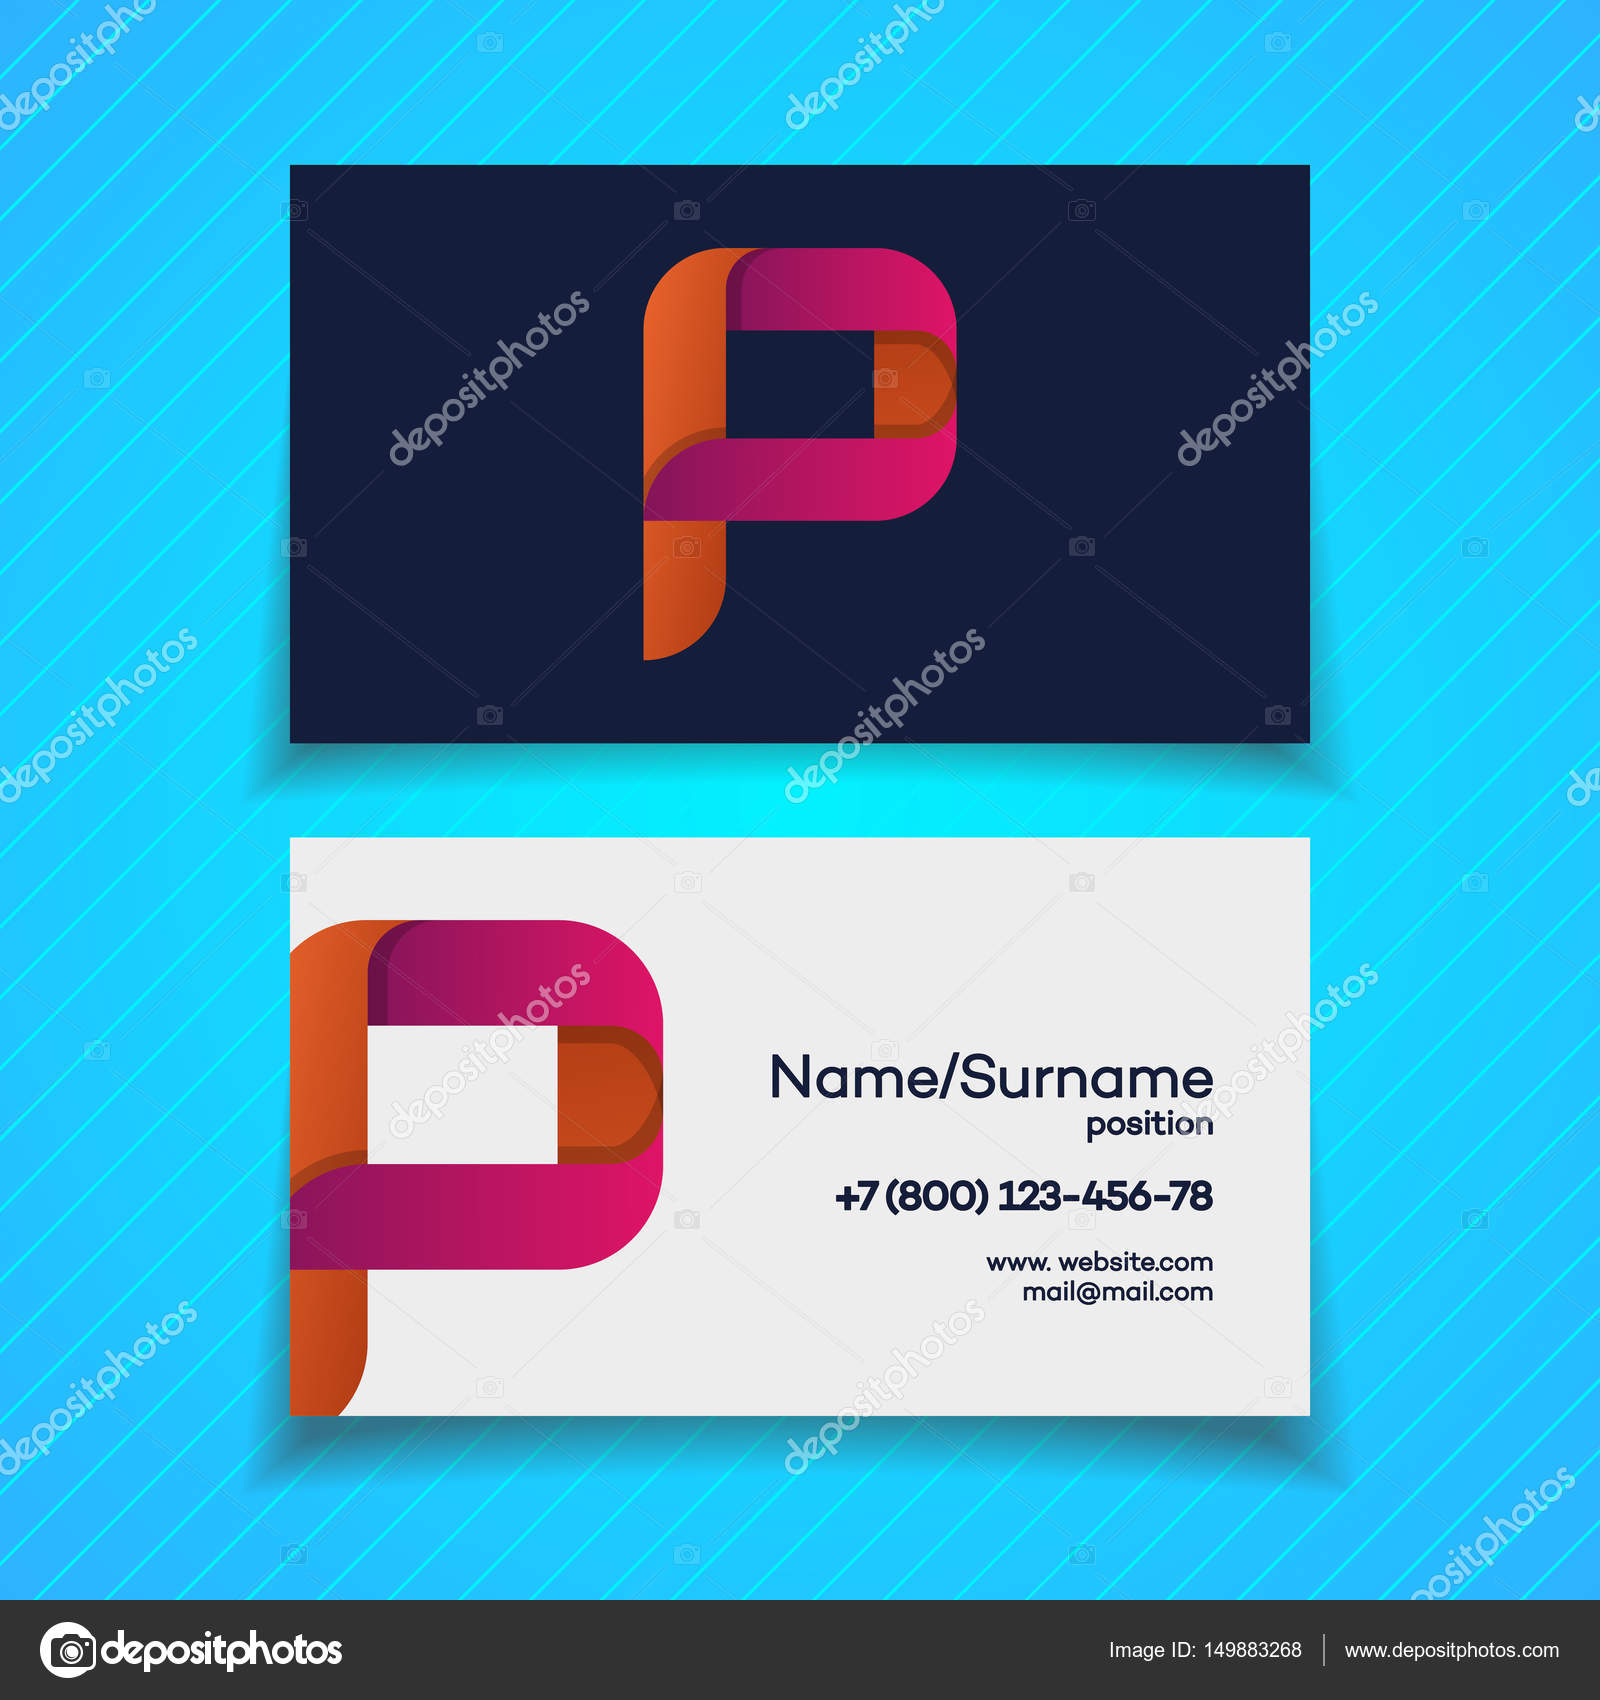 Business card design template with P letter logo modern color ...